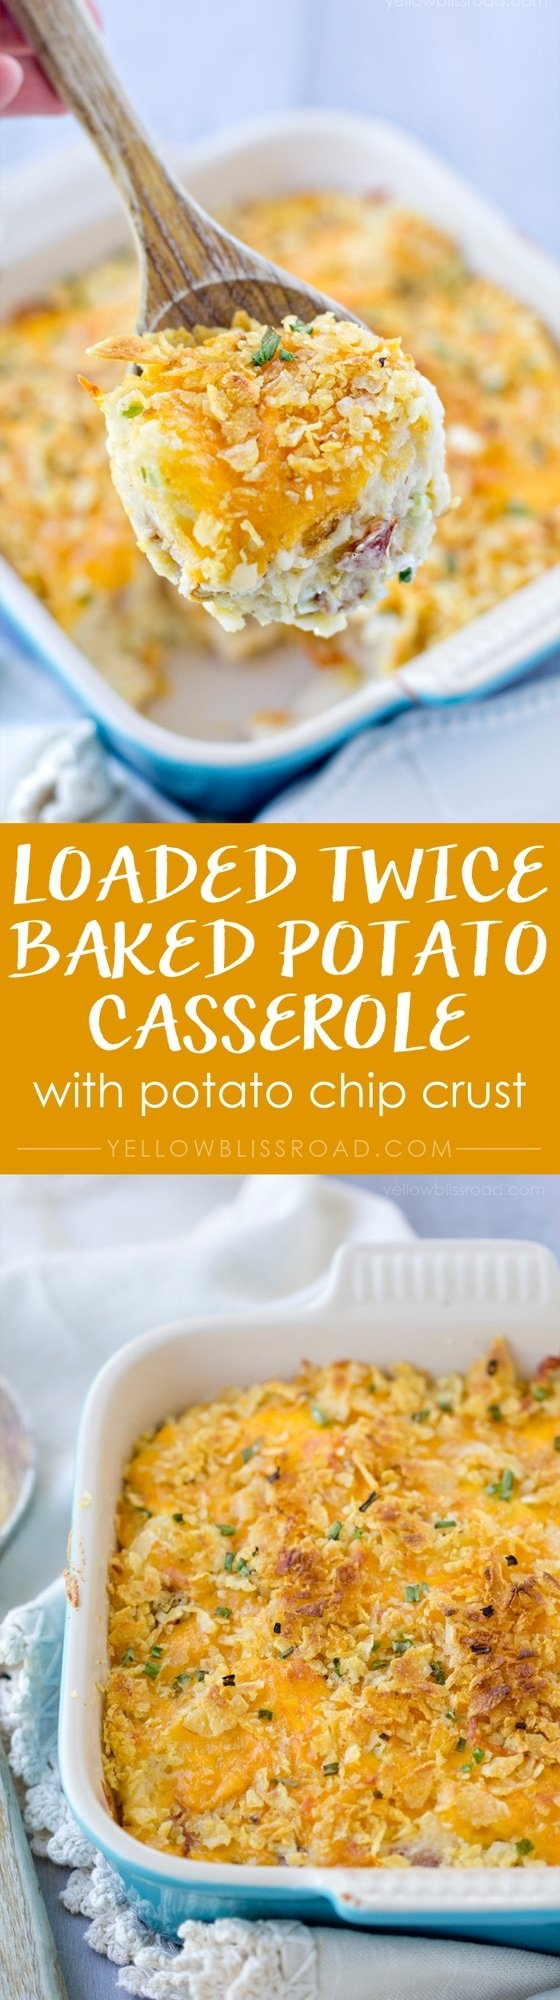 Loaded Twiced Baked Potato Casserole with Potato Chip Crust